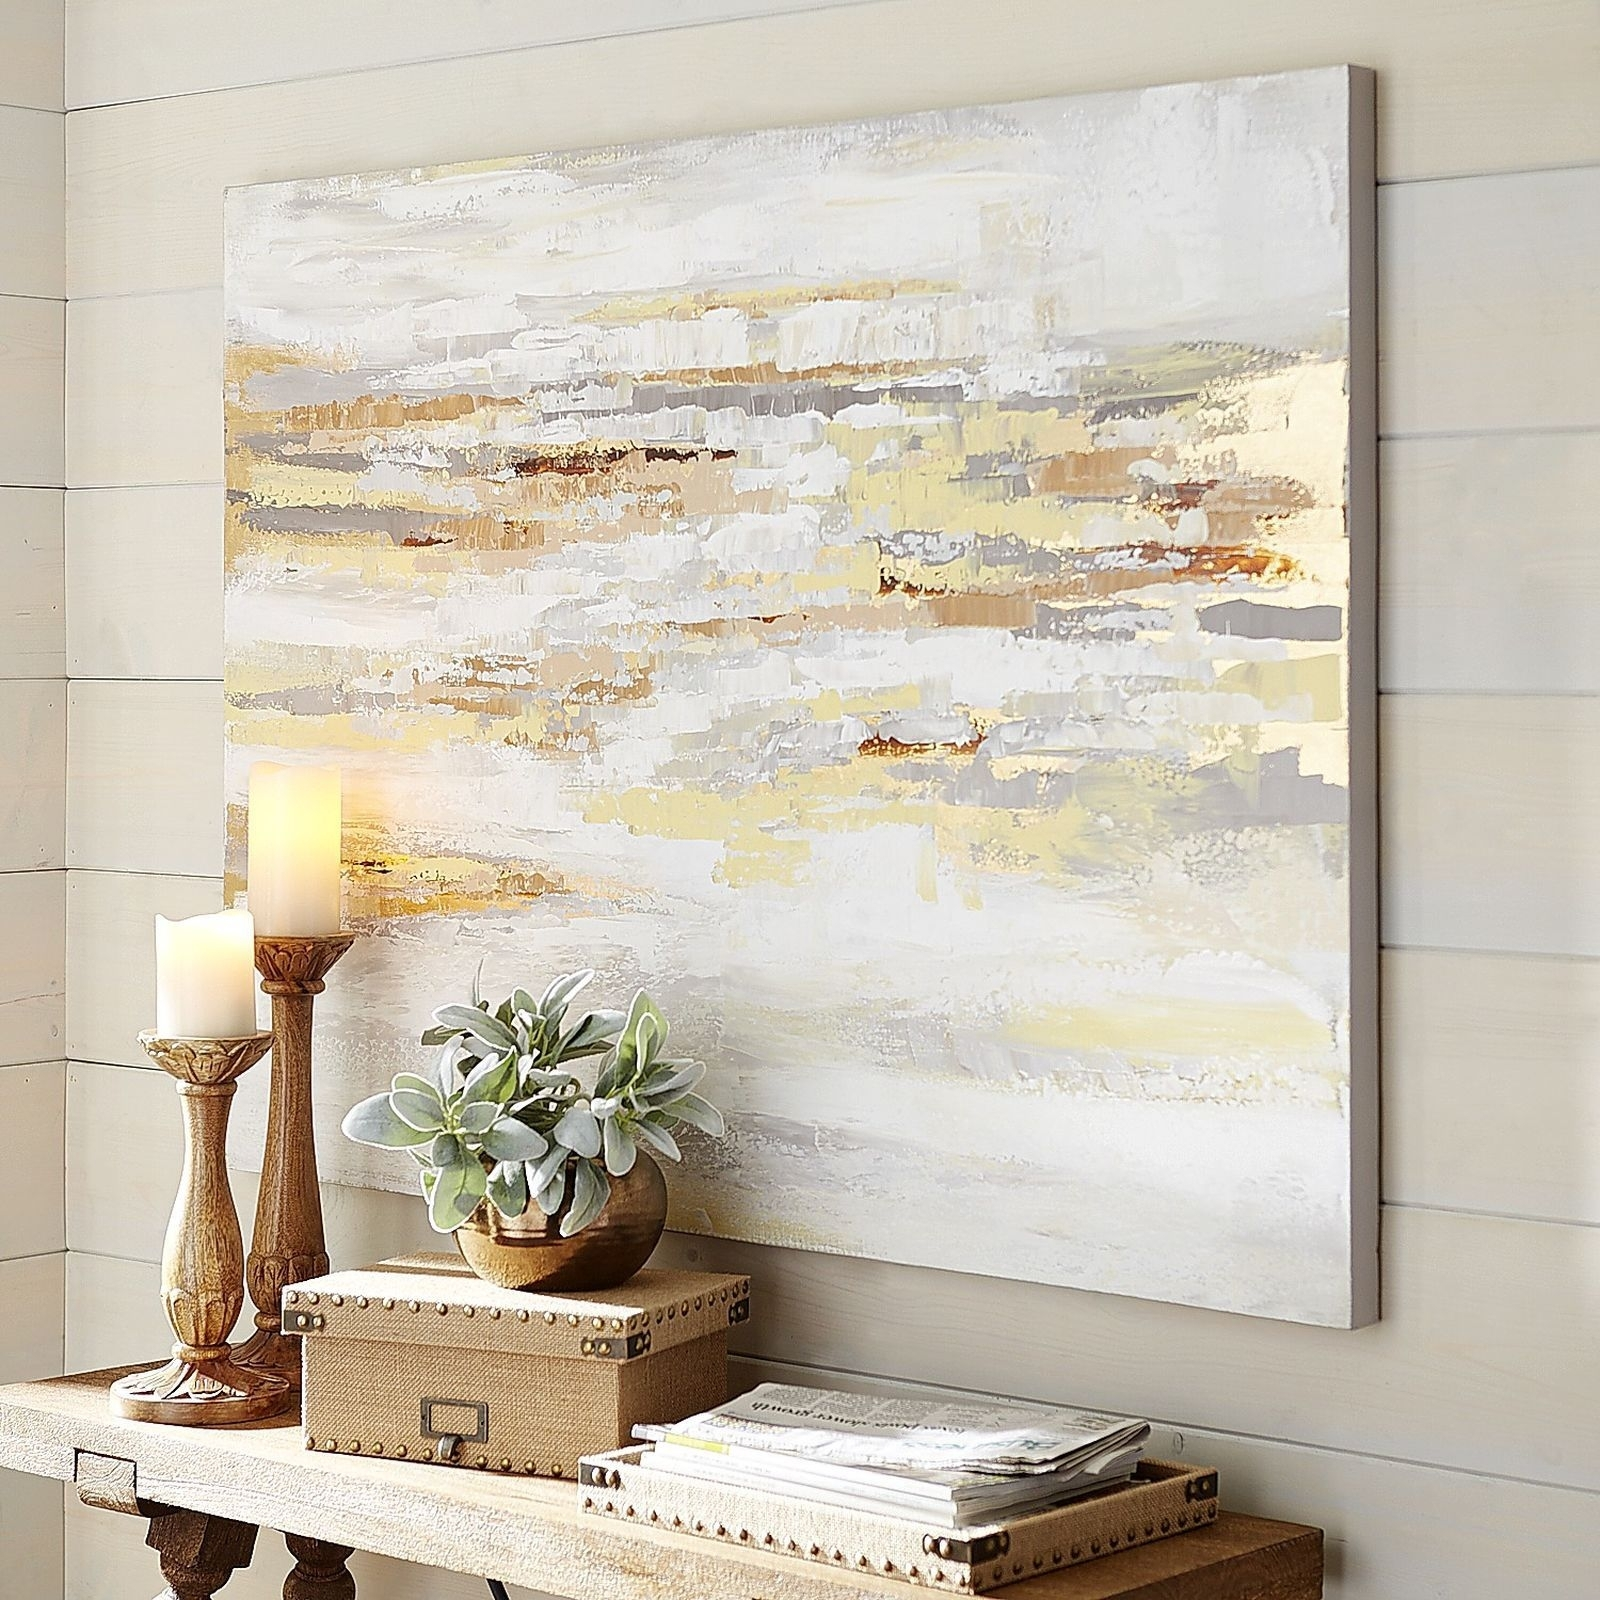 Muted Shades Multiply Your Options When Considering Wall Art For Inside 2018 Neutral Abstract Wall Art (View 11 of 20)